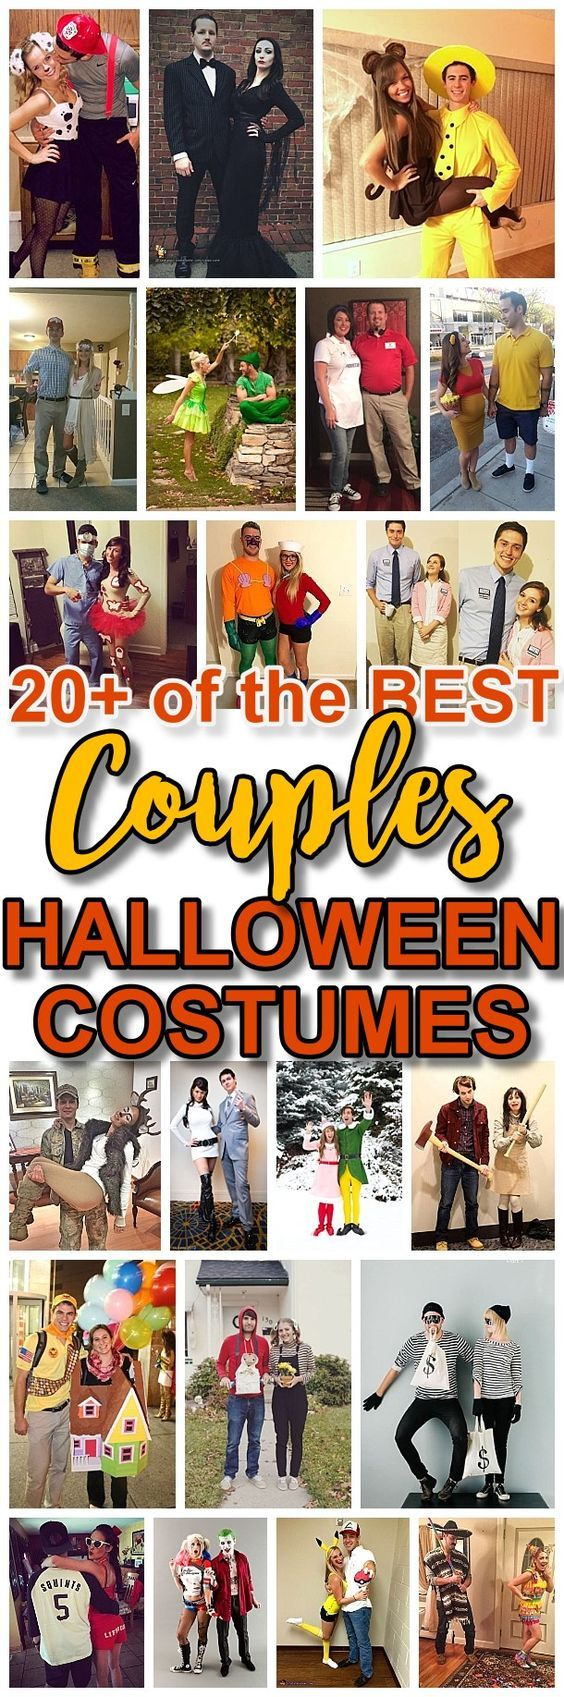 DIY Couples Halloween Costume Ideas - Do it Yourself Homemade FUN ideas that are sure to win Party Costume Contests